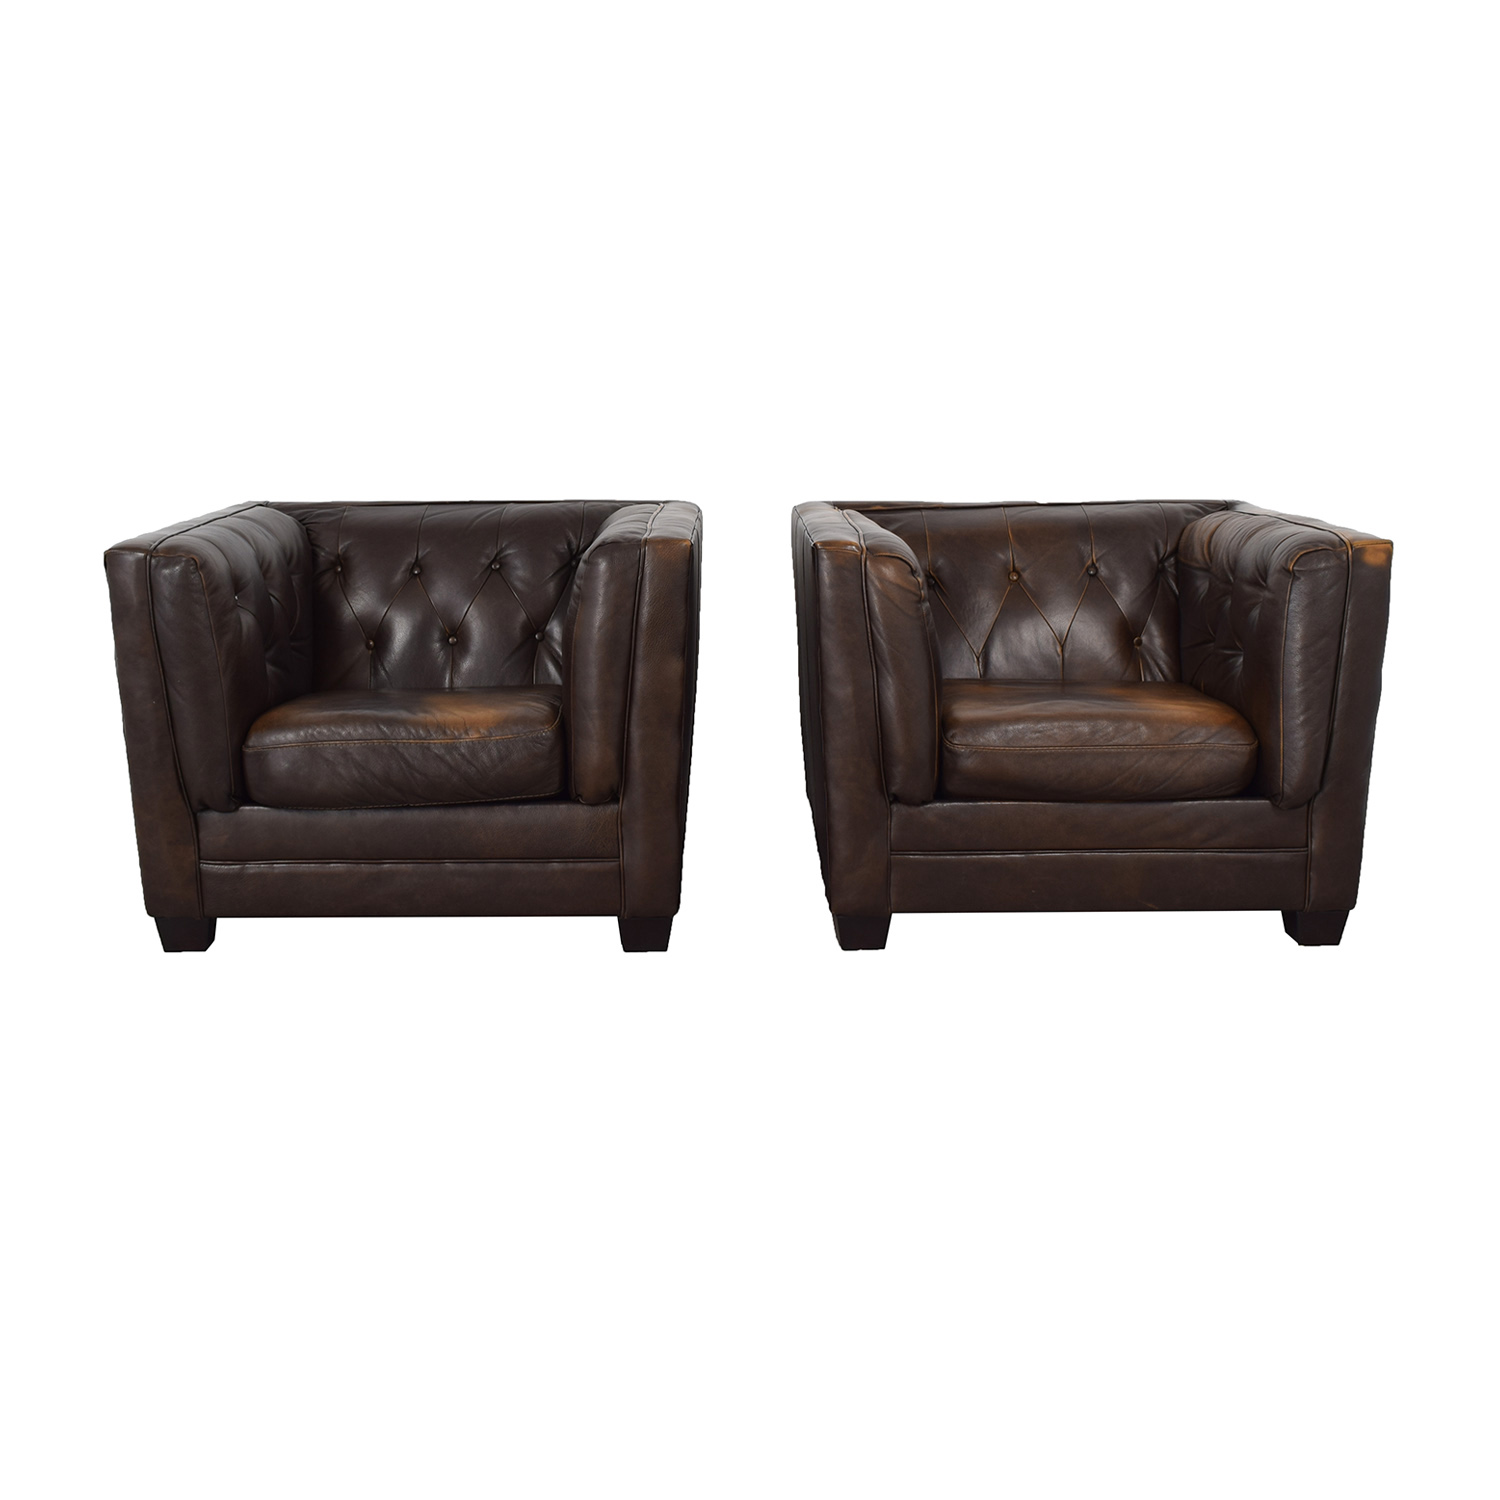 69 Off Ashley Furniture Ashley Furniture Tufted Accent Chairs Chairs